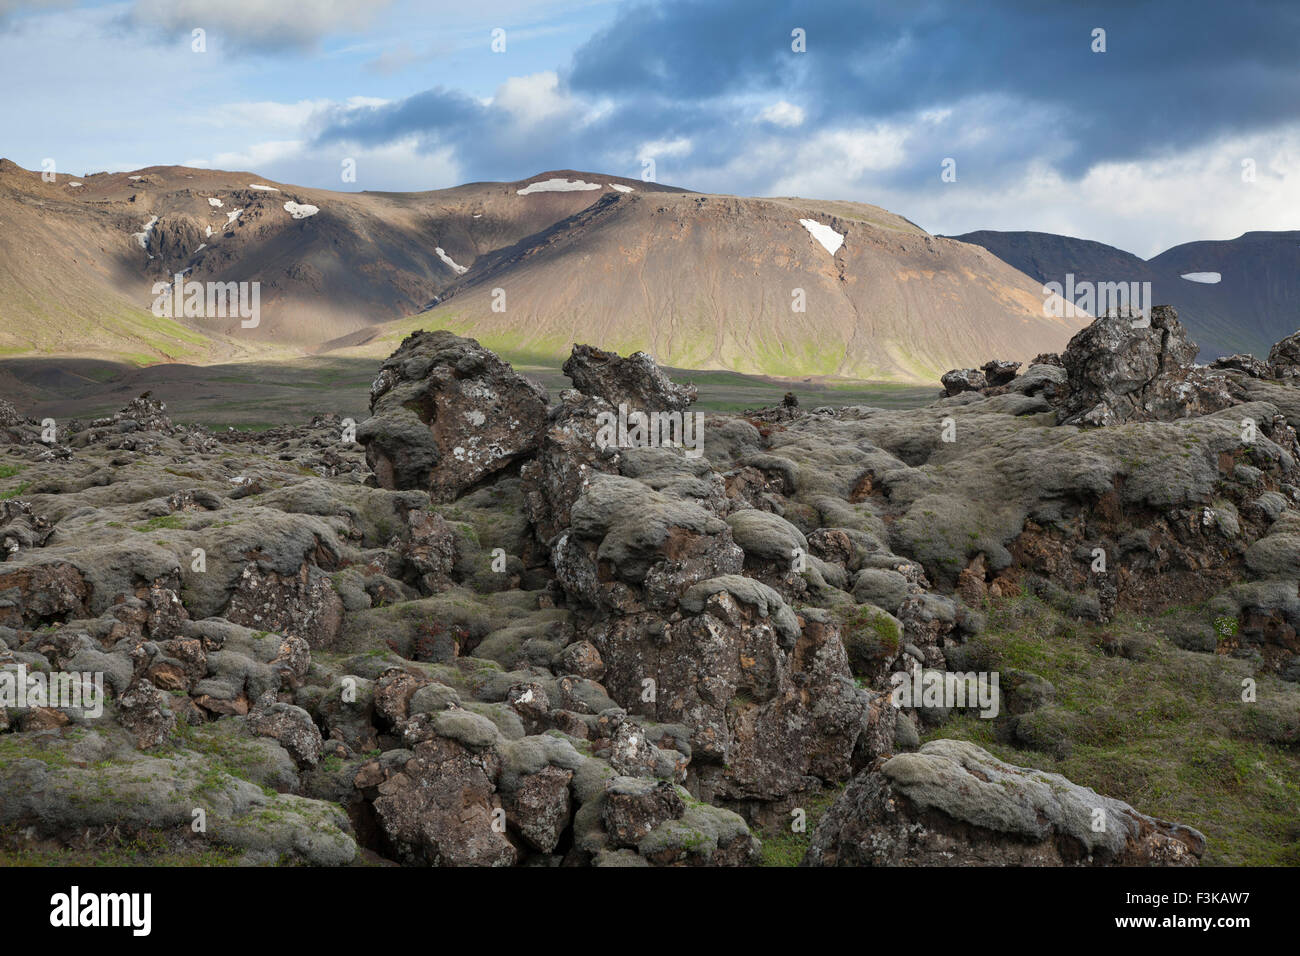 Moss-covered lava field and mountains near Hveragerdi, Sudherland, Iceland. - Stock Image